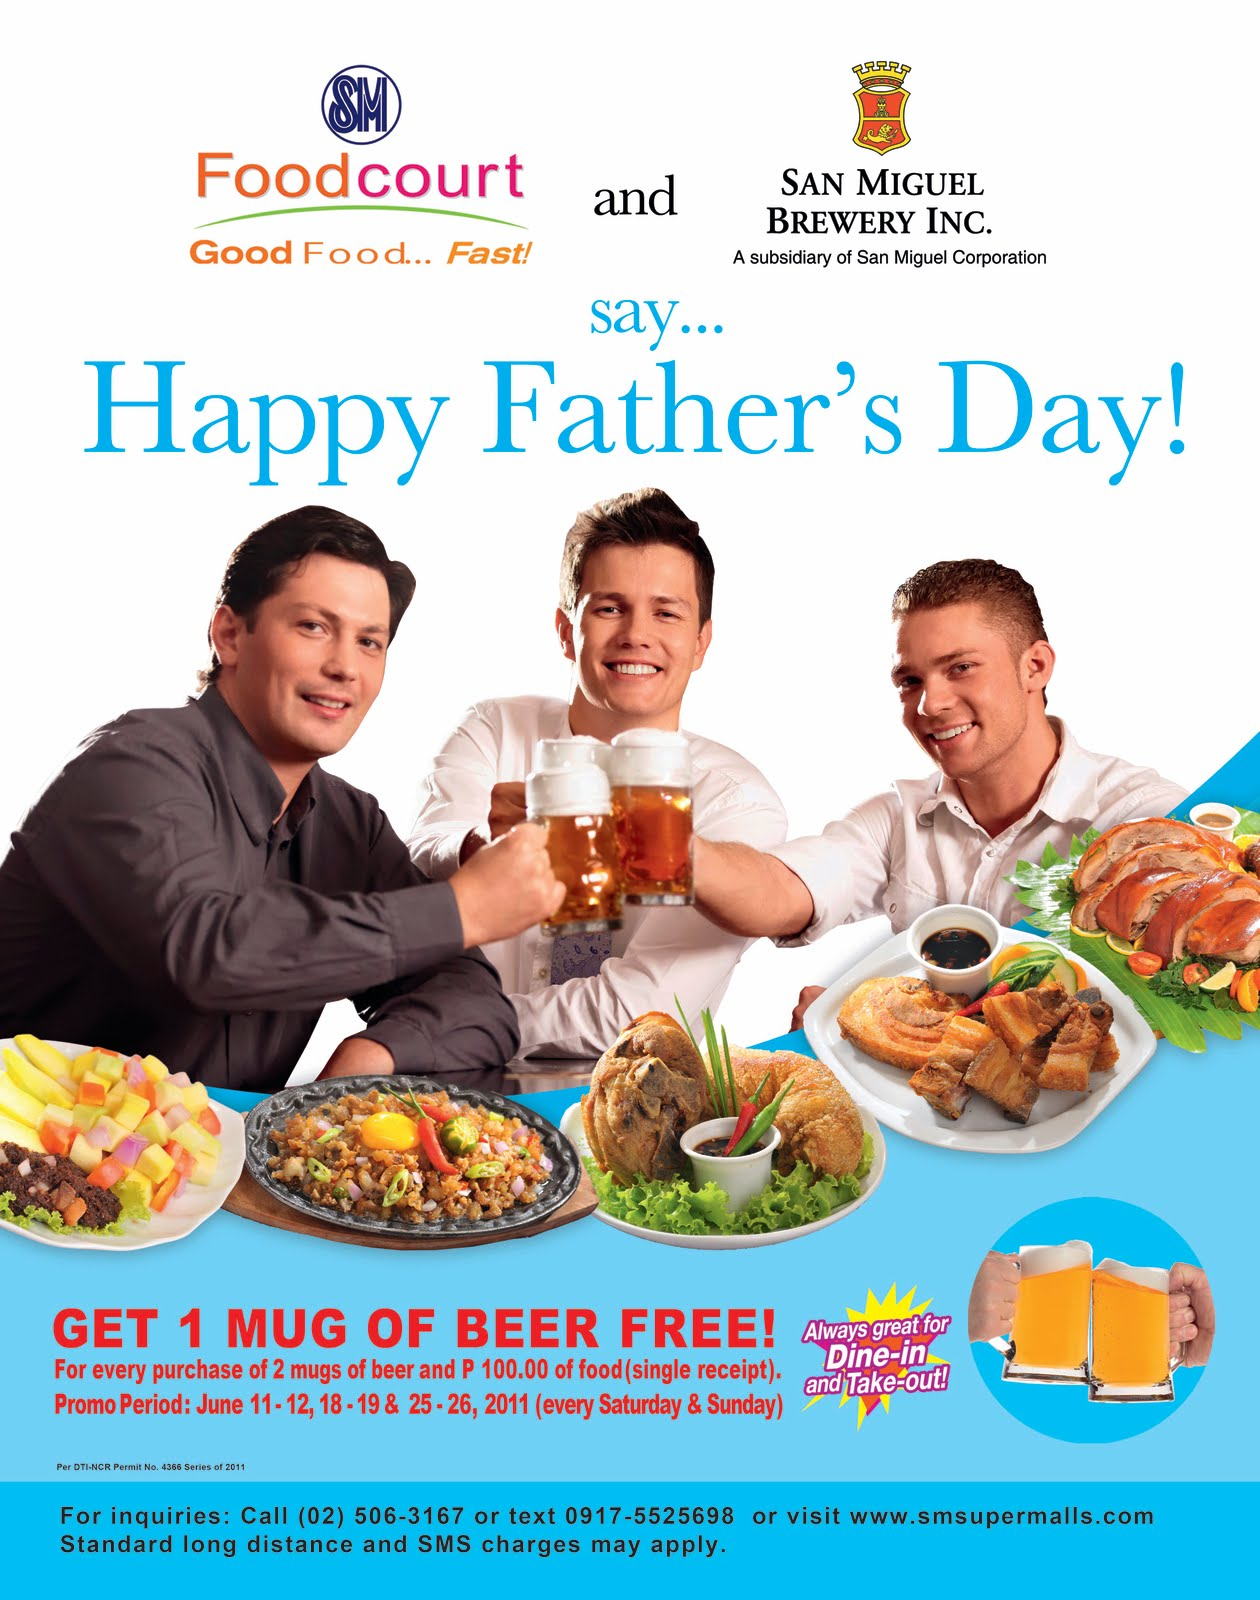 SM Davao Foodcourt celebrates Fathers Day 2011 with free beer